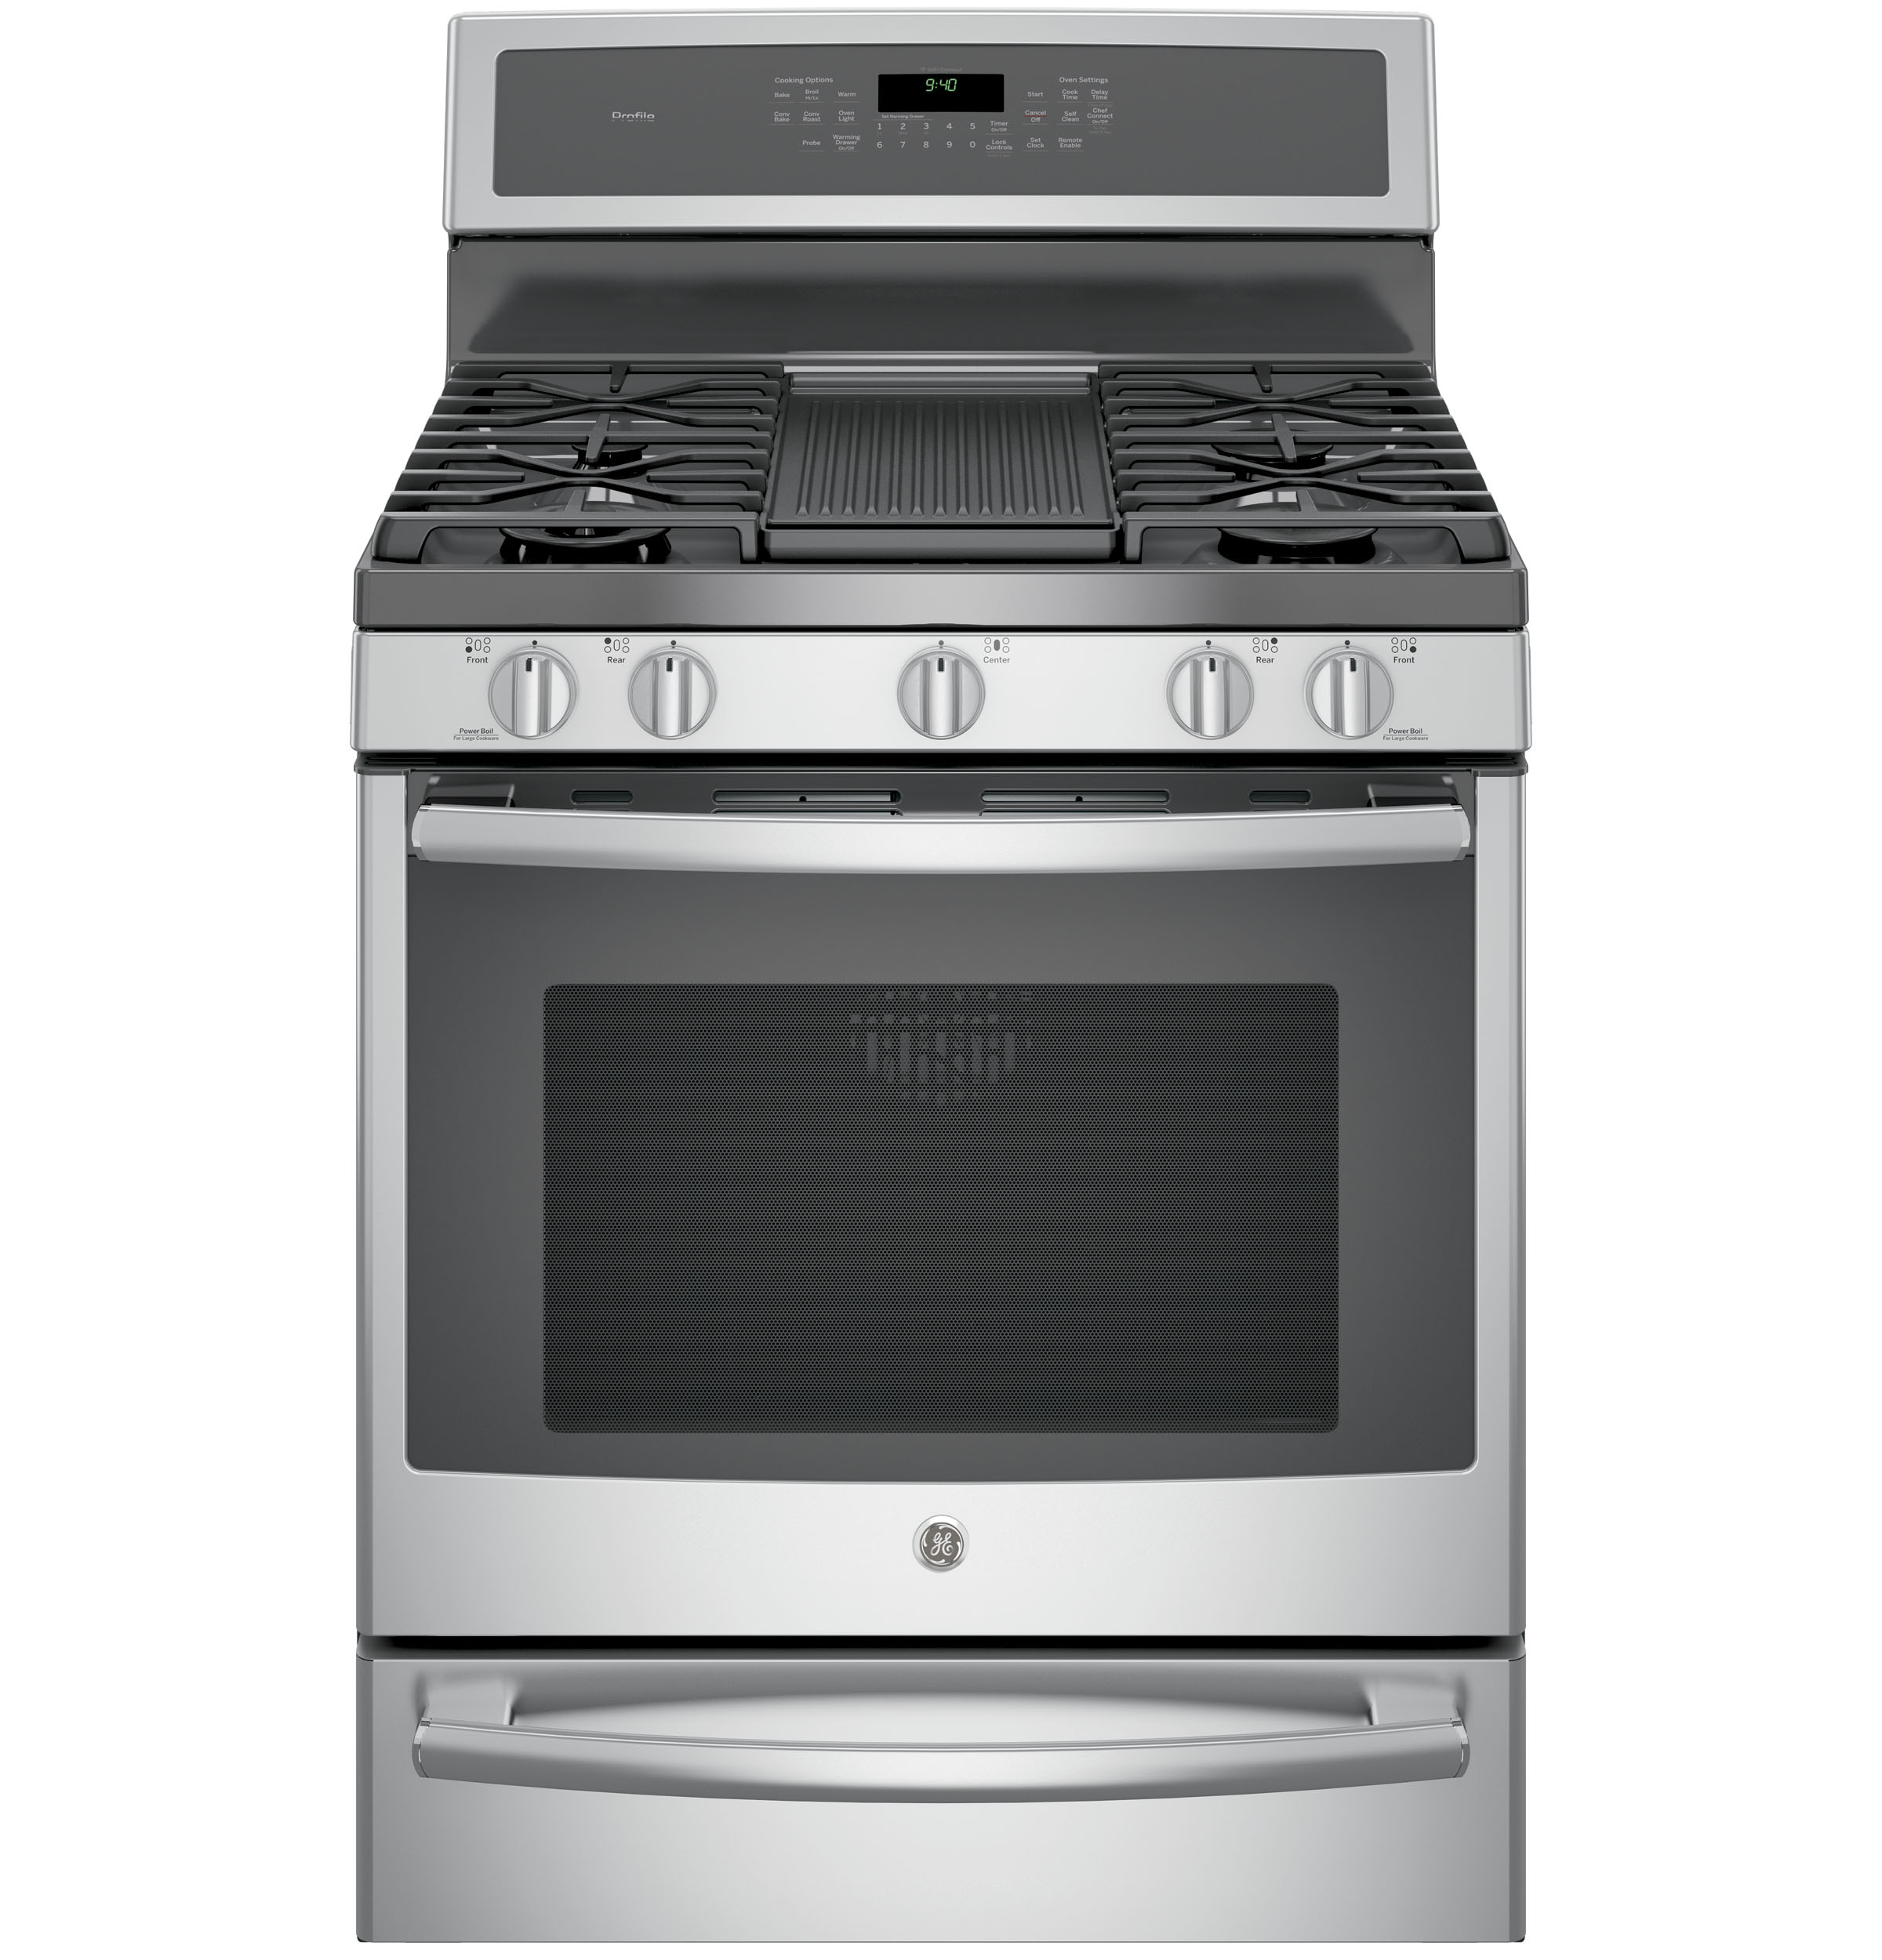 "GE Profile GE Profile™ Series 30"" Dual-Fuel Free-Standing Convection Range with Warming Drawer"